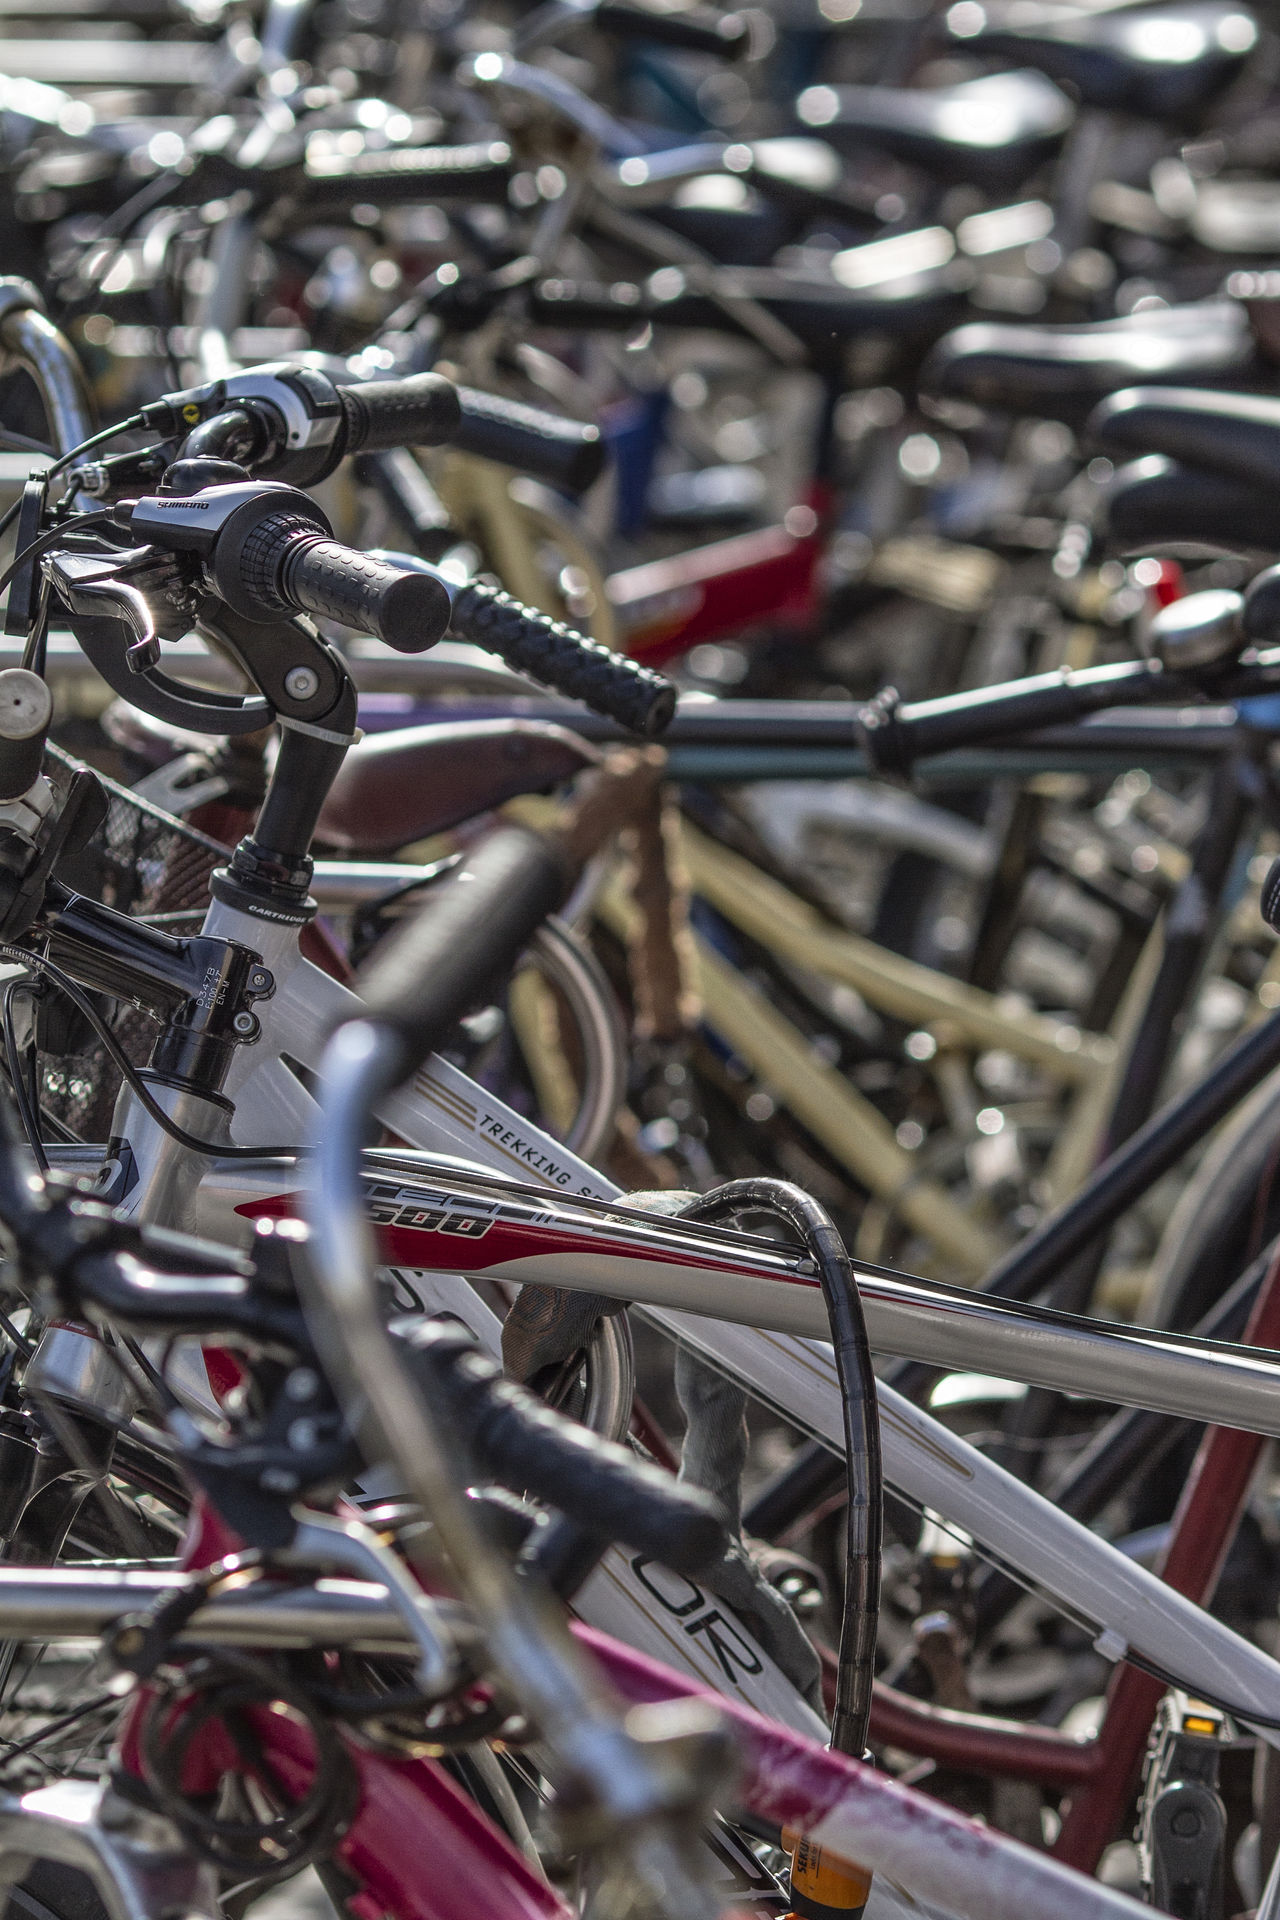 Bicycle Close-up Day Focus On Foreground Large Group Of Objects Metal Mode Of Transport No People Outdoors Stationary Transportation